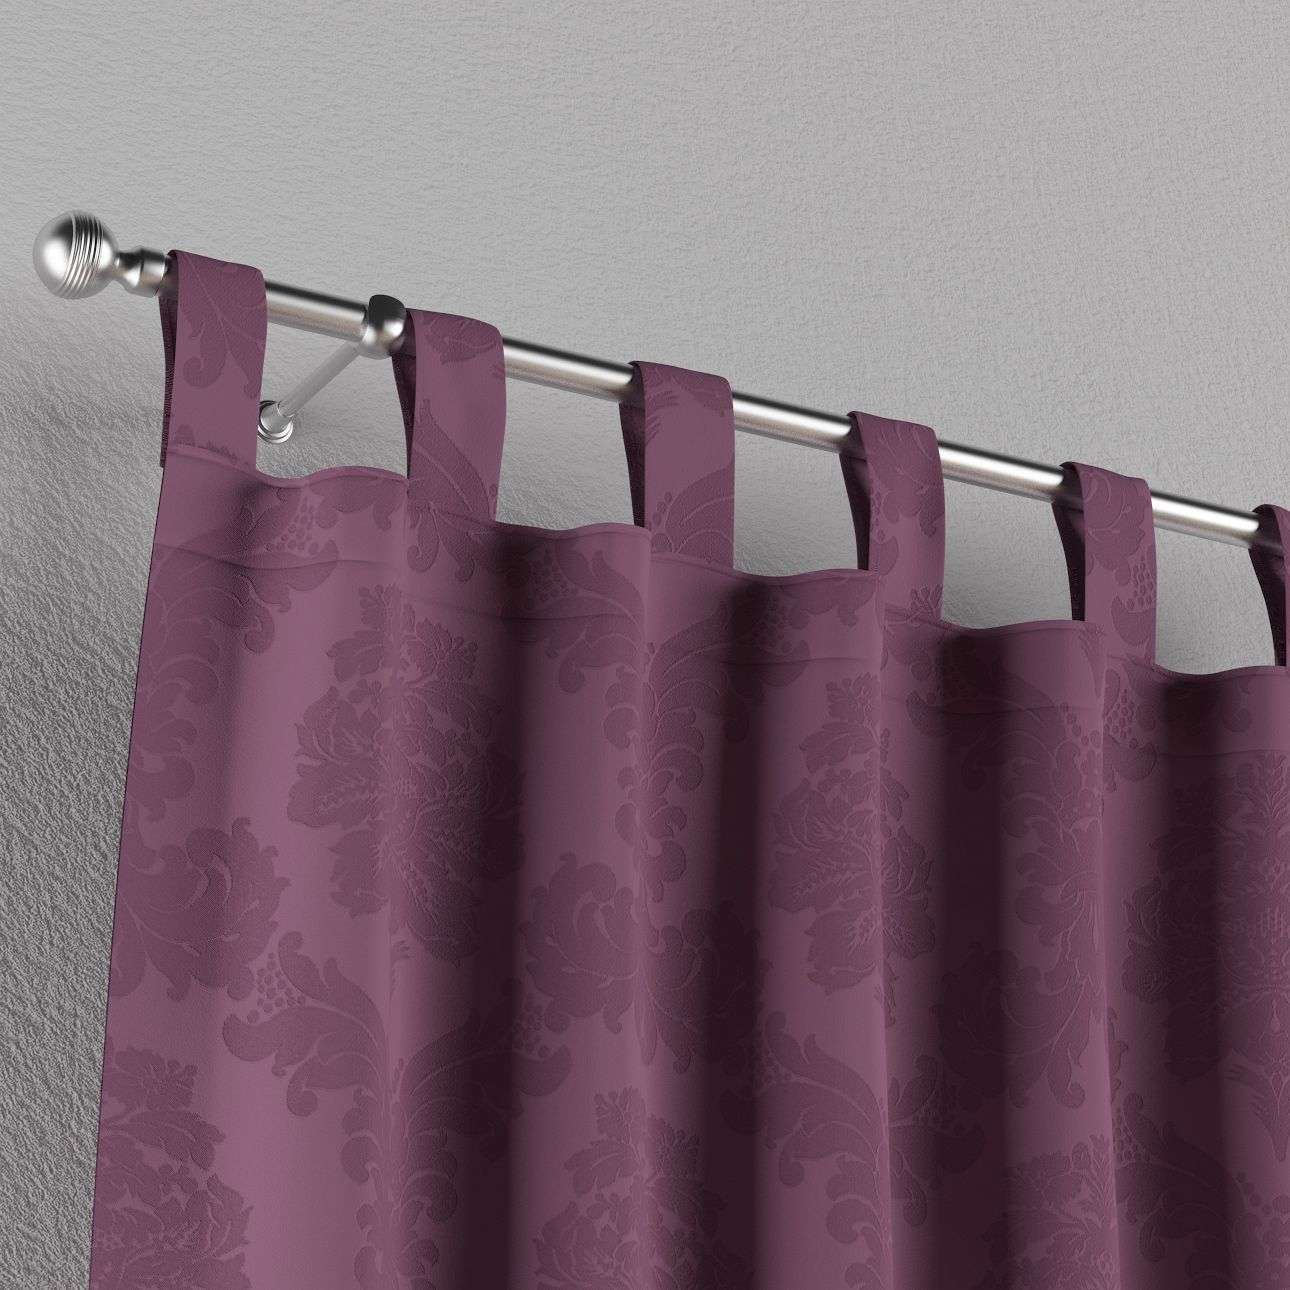 Tab top curtains 130 x 260 cm (51 x 102 inch) in collection Damasco, fabric: 613-75